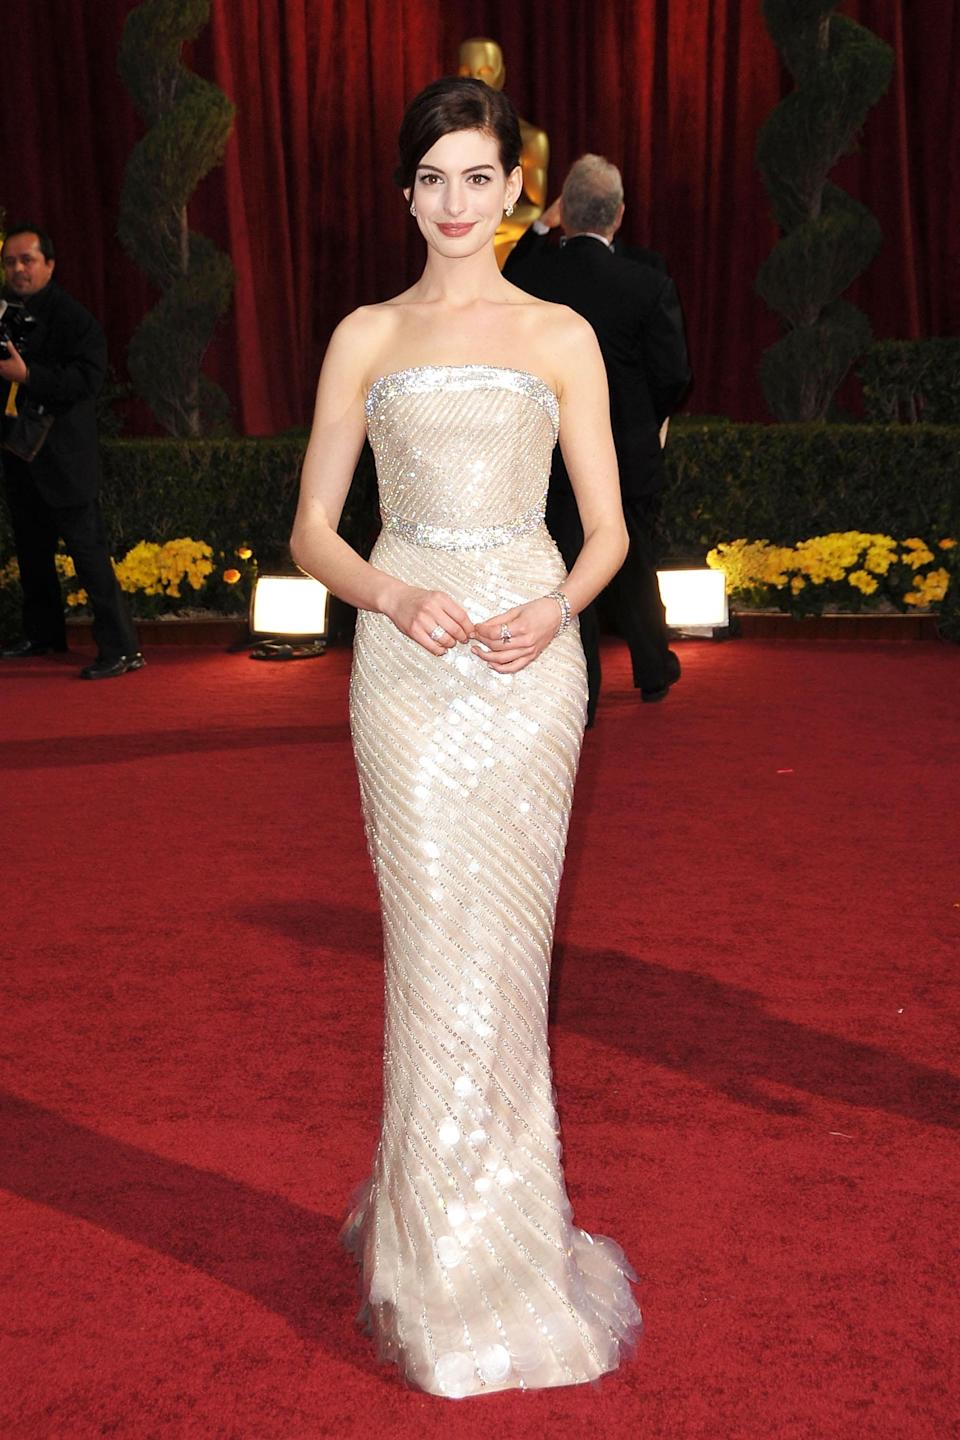 """<strong><h2>Anne Hathaway, 2009</h2></strong><br>Is it just us, or does Anne Hathaway look like an actual Oscar in this fitted Armani Privé dress?<br><br><em>Anne Hathaway in Armani Privé.</em><span class=""""copyright"""">Photo: John Shearer/WireImage/Getty Images. </span>"""